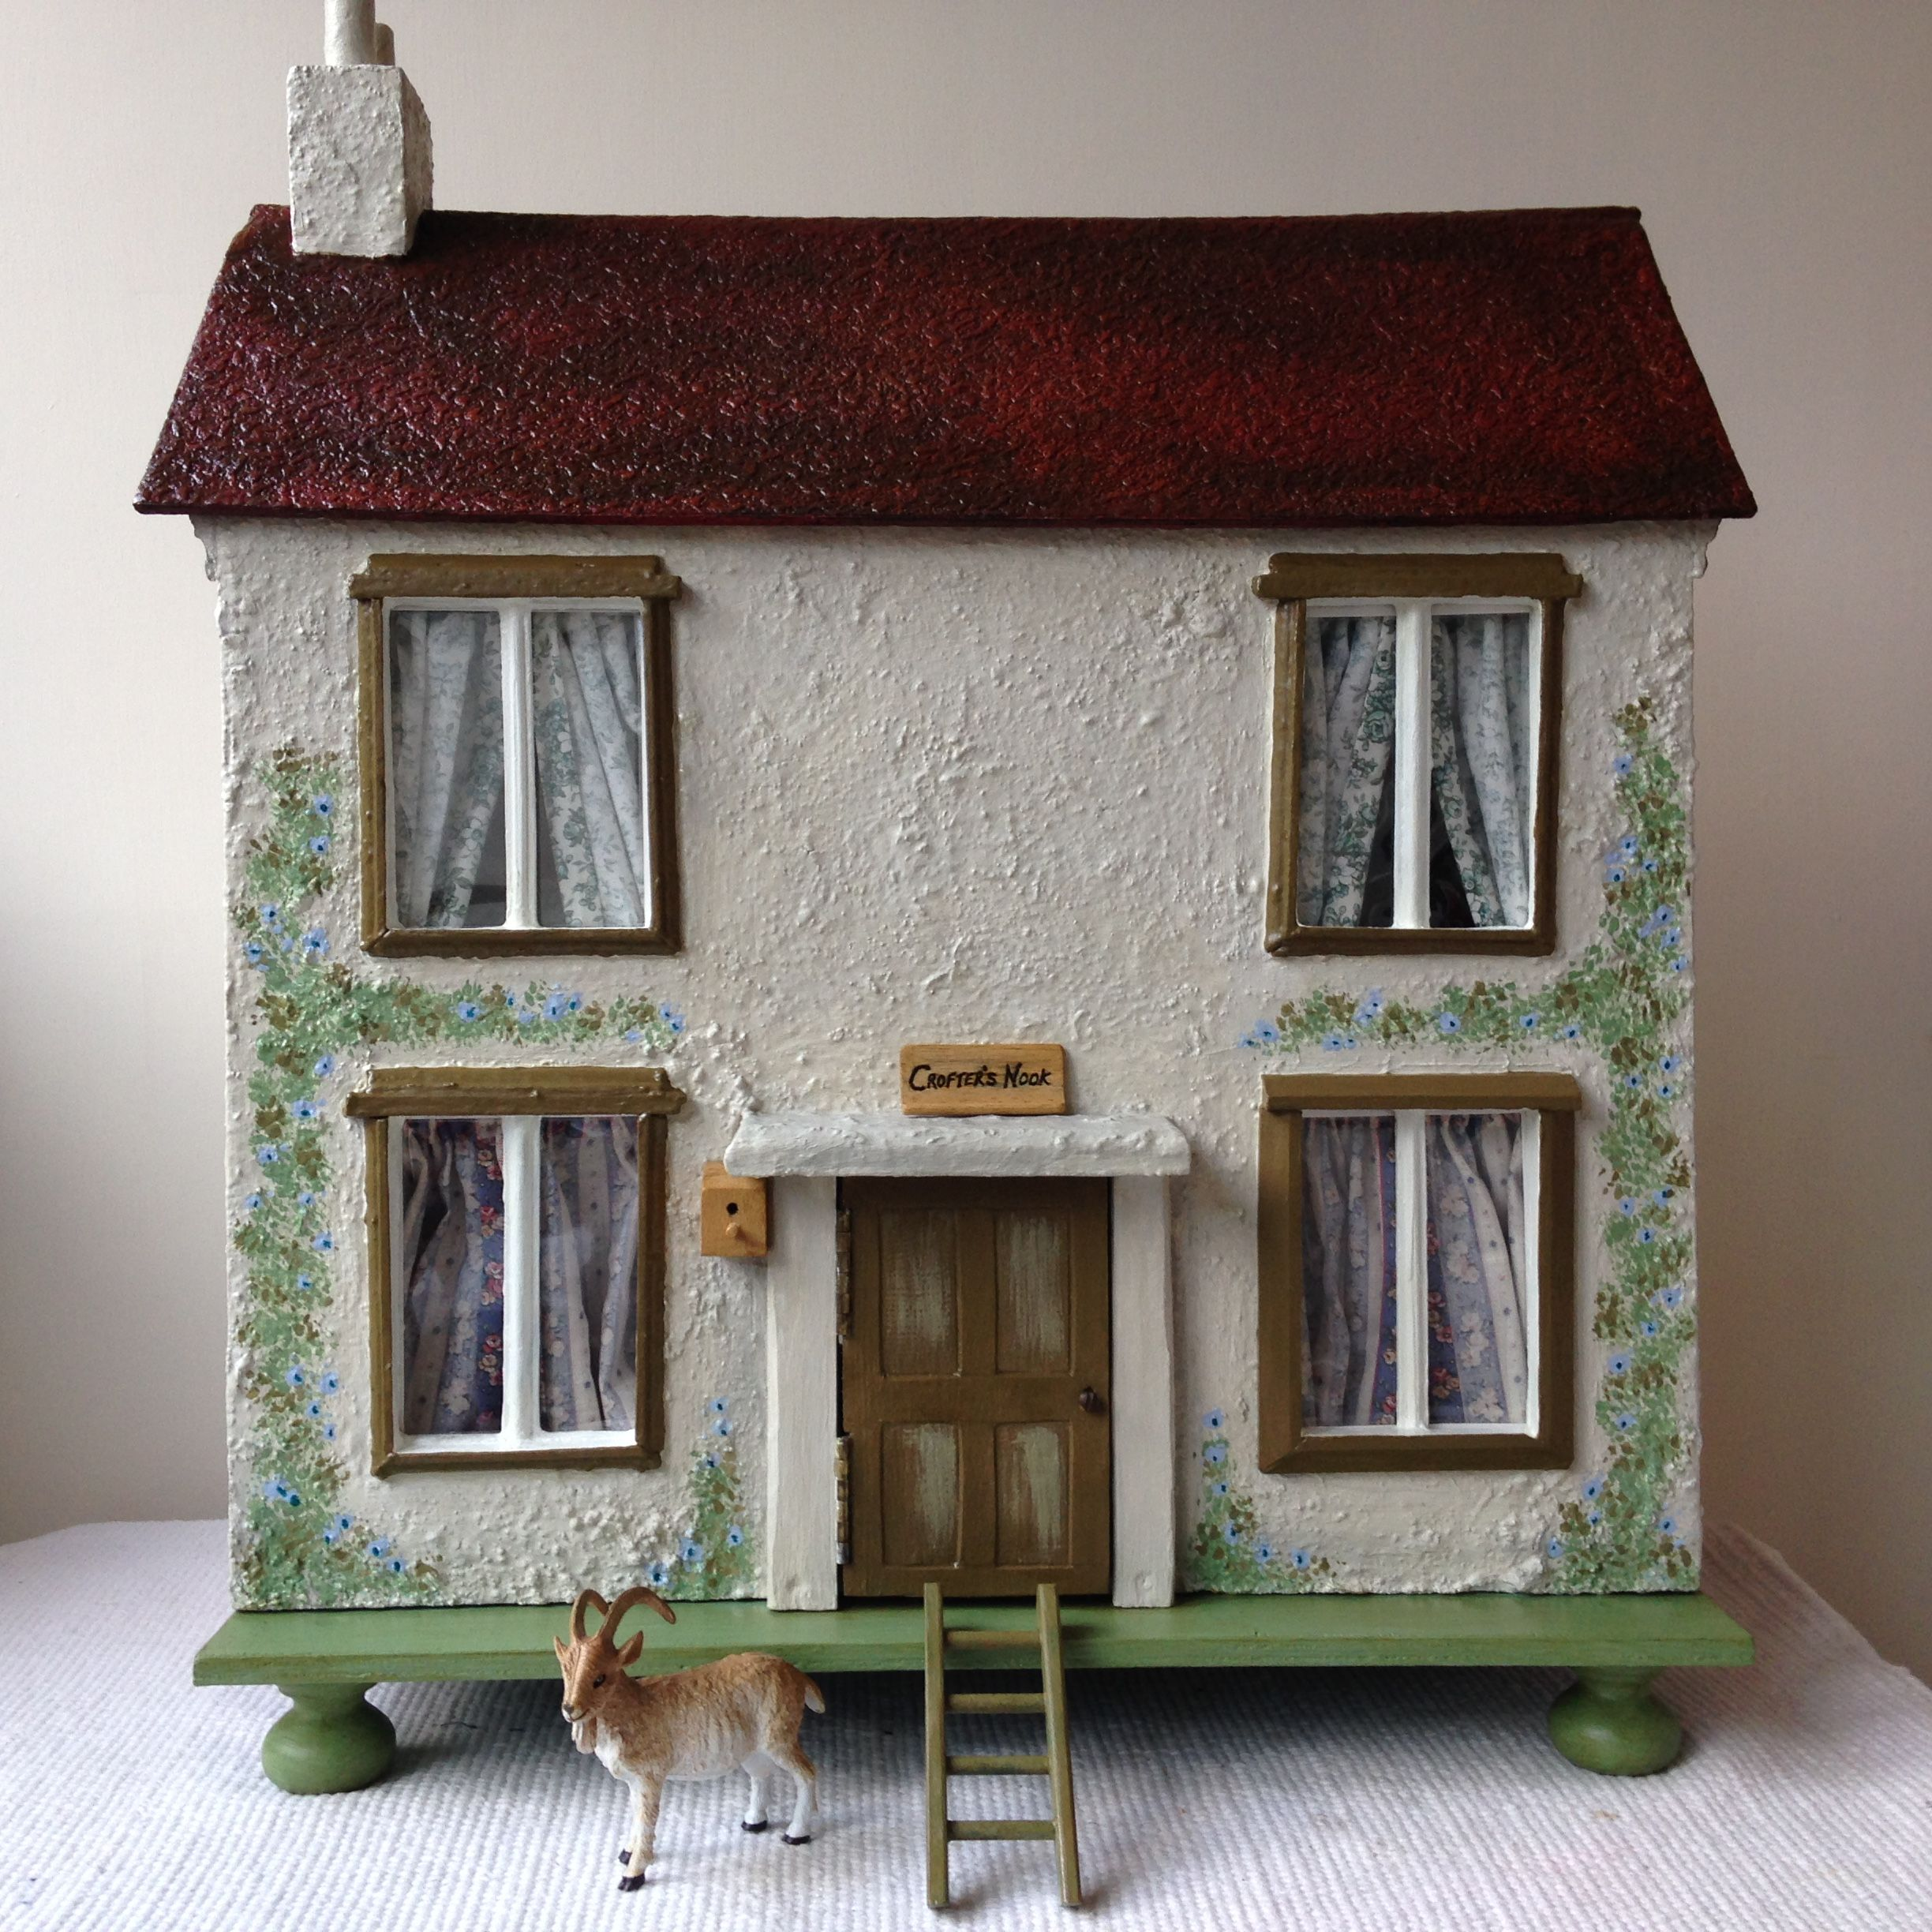 1950s Rustic Dolls House Cottage, 'Crofter's Nook'. Opens